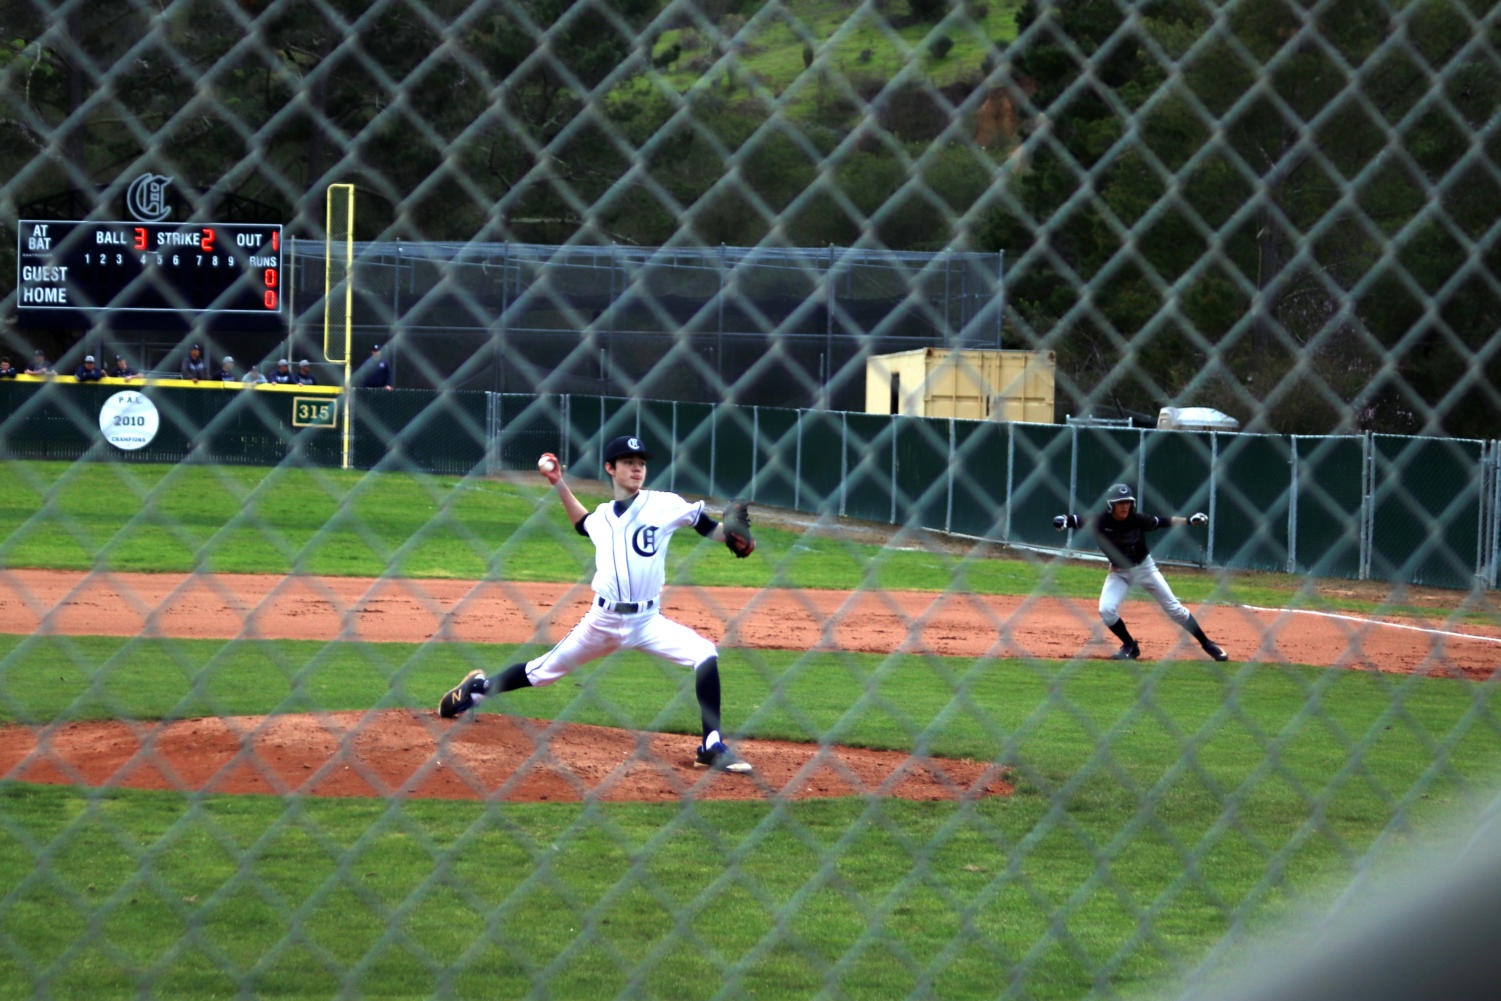 Pitcher+Tai+Takahashi+throws+a+strike+against+Sequoia+in+the+1st+inning.